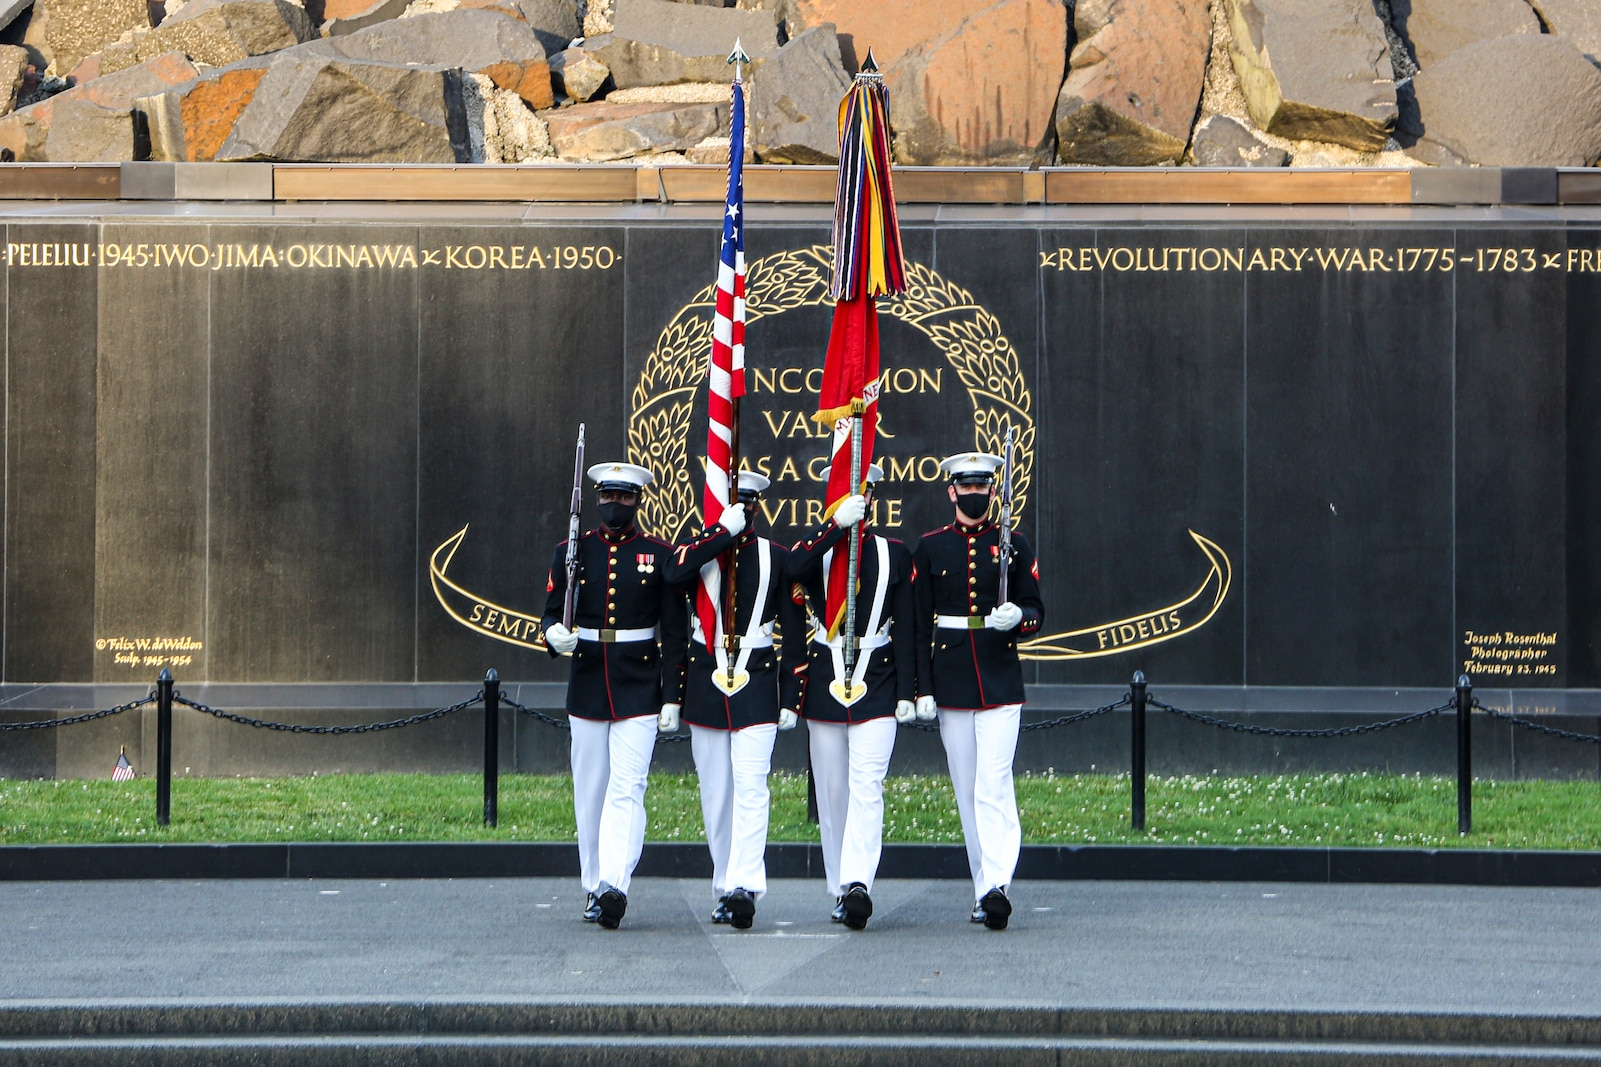 Marines with the Official U.S. Marine Corps Color Guard march into position during a Tuesday Sunset Parade at the Marine Corps War Memorial, Arlington, Va., June 8, 2021.